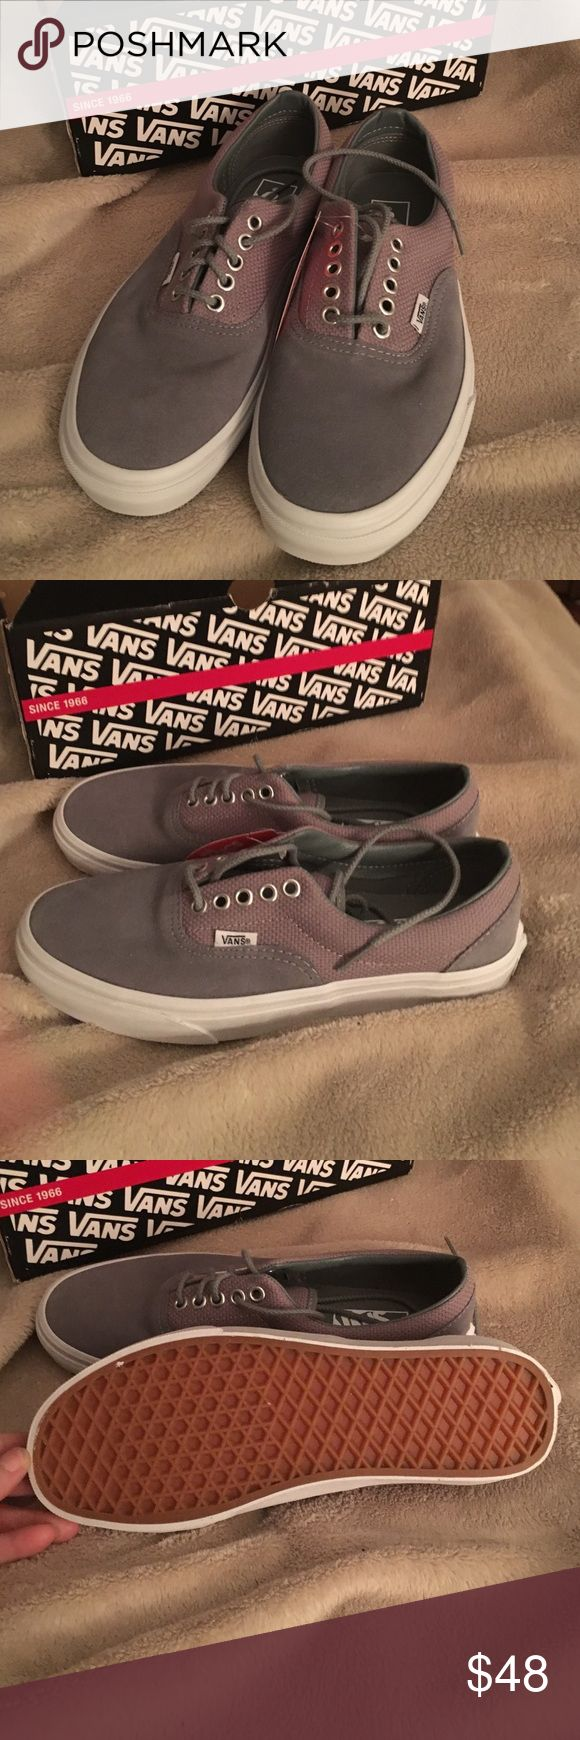 New Hemp gray leather Vans tennis shoes men's 7.0 New gray Vans tennis shoes leather men's 7.0 women's 8.5 Vans Shoes Athletic Shoes